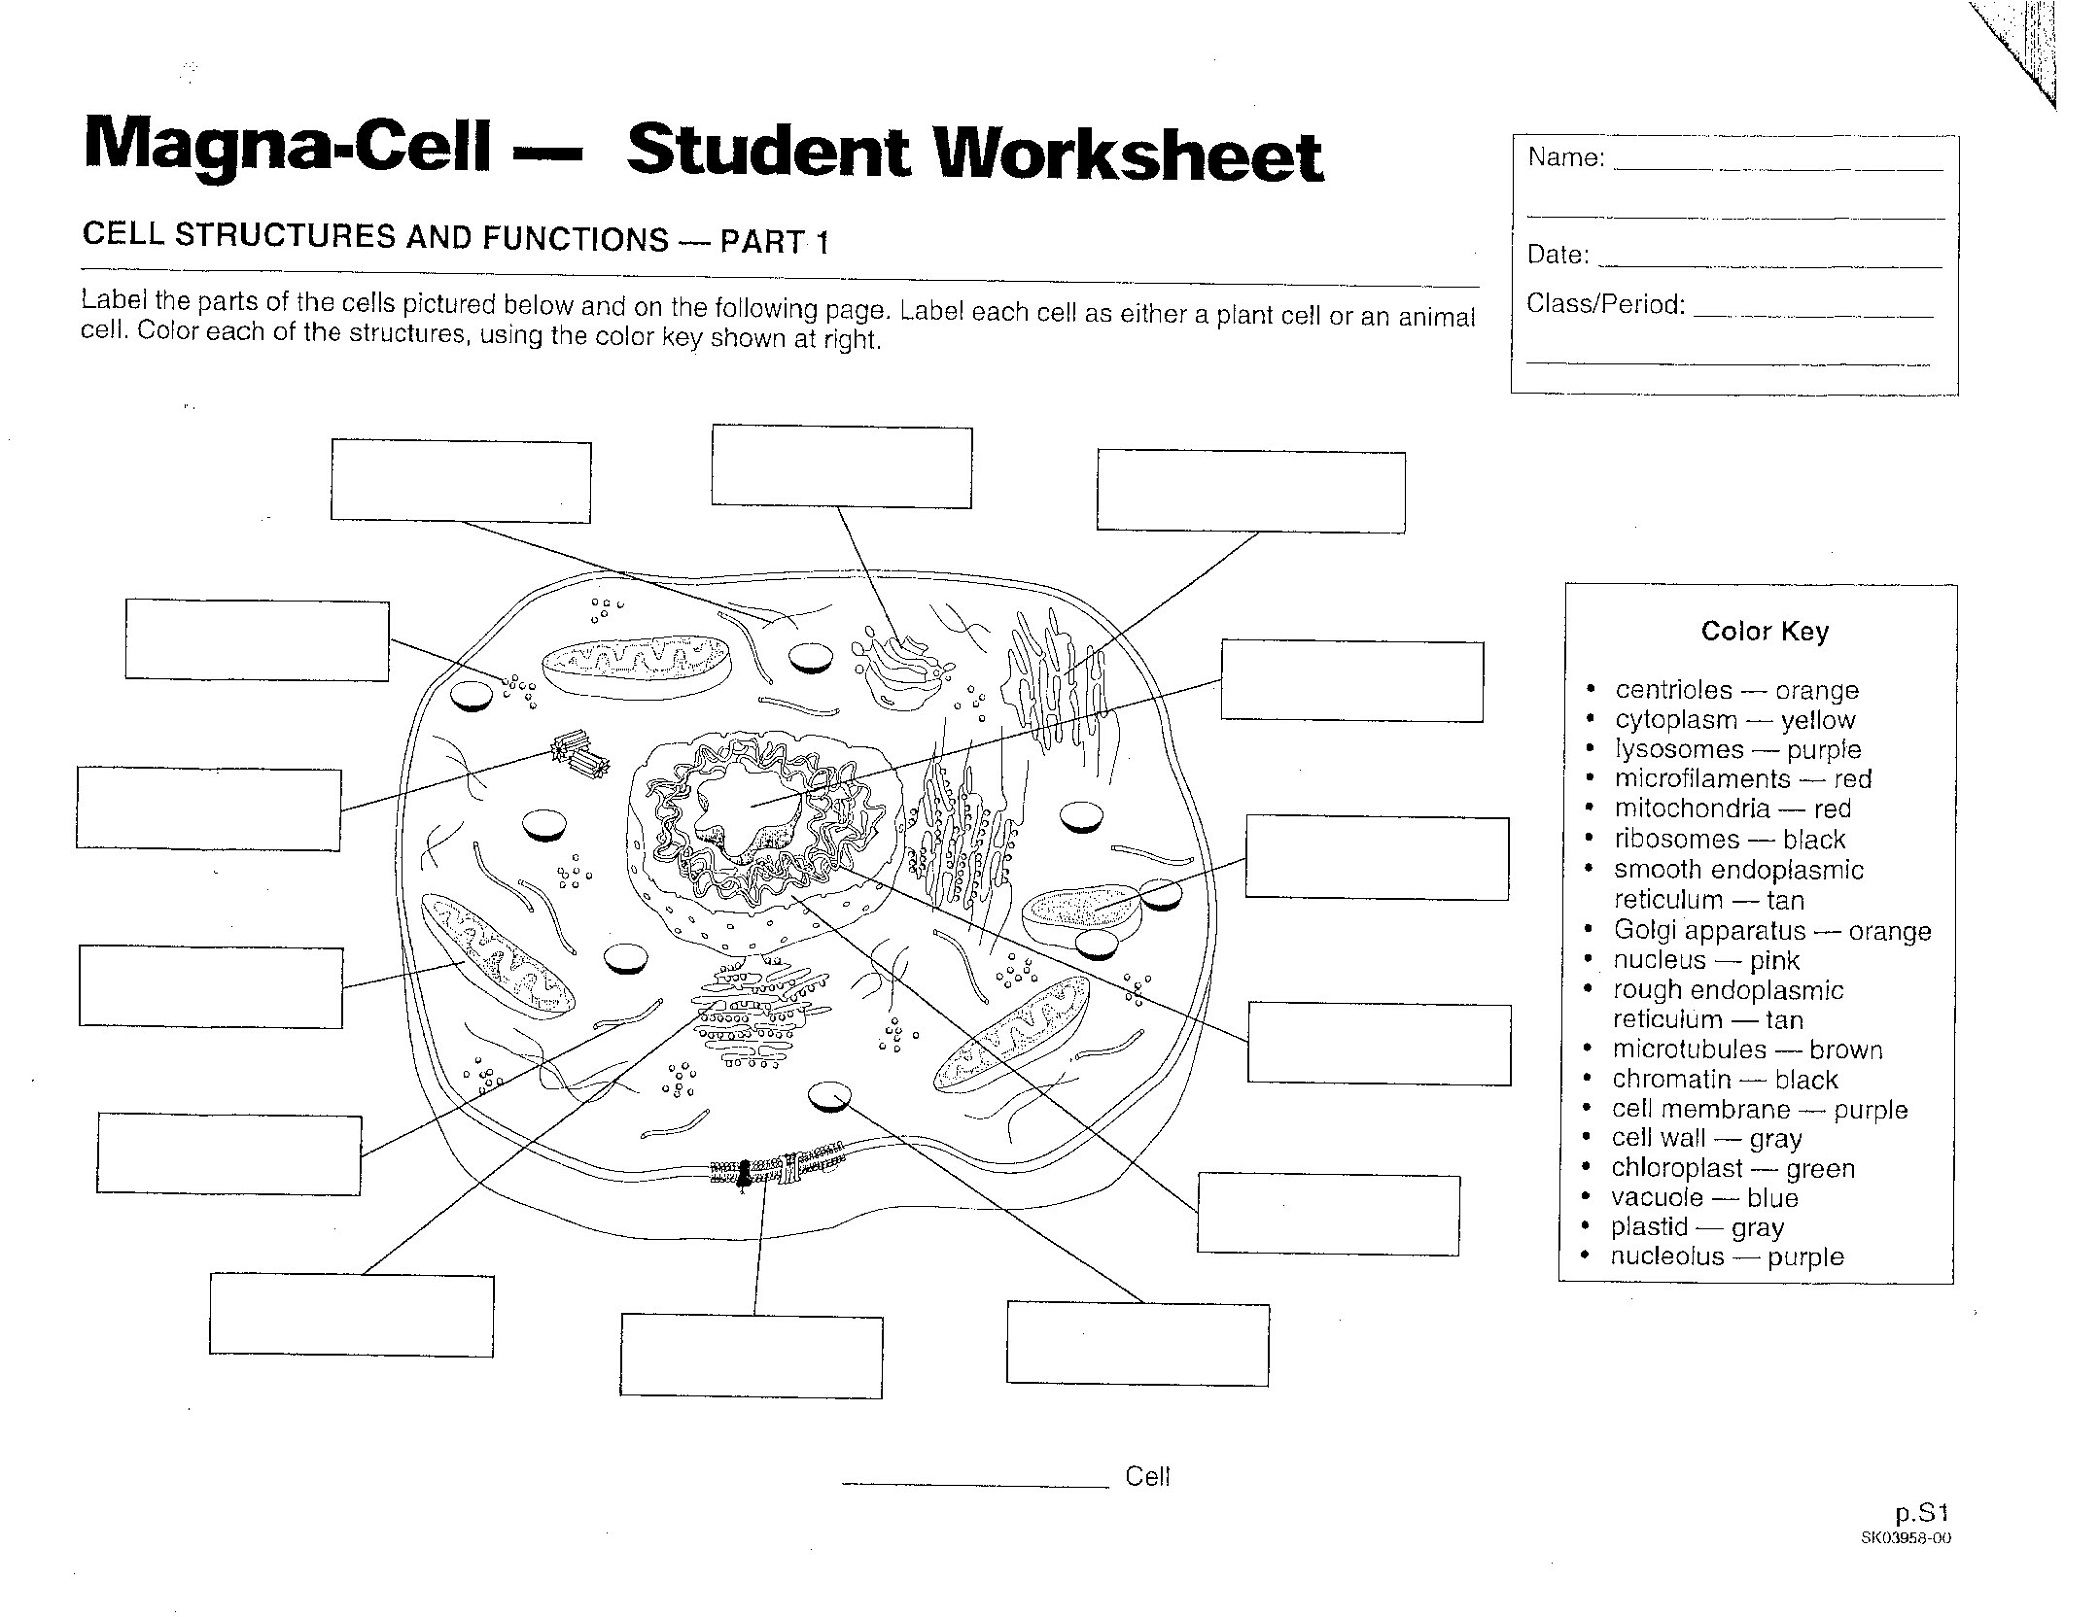 Cell Membrane Diagram Blank.Printable Animal Cell Diagram With Labels And Functions